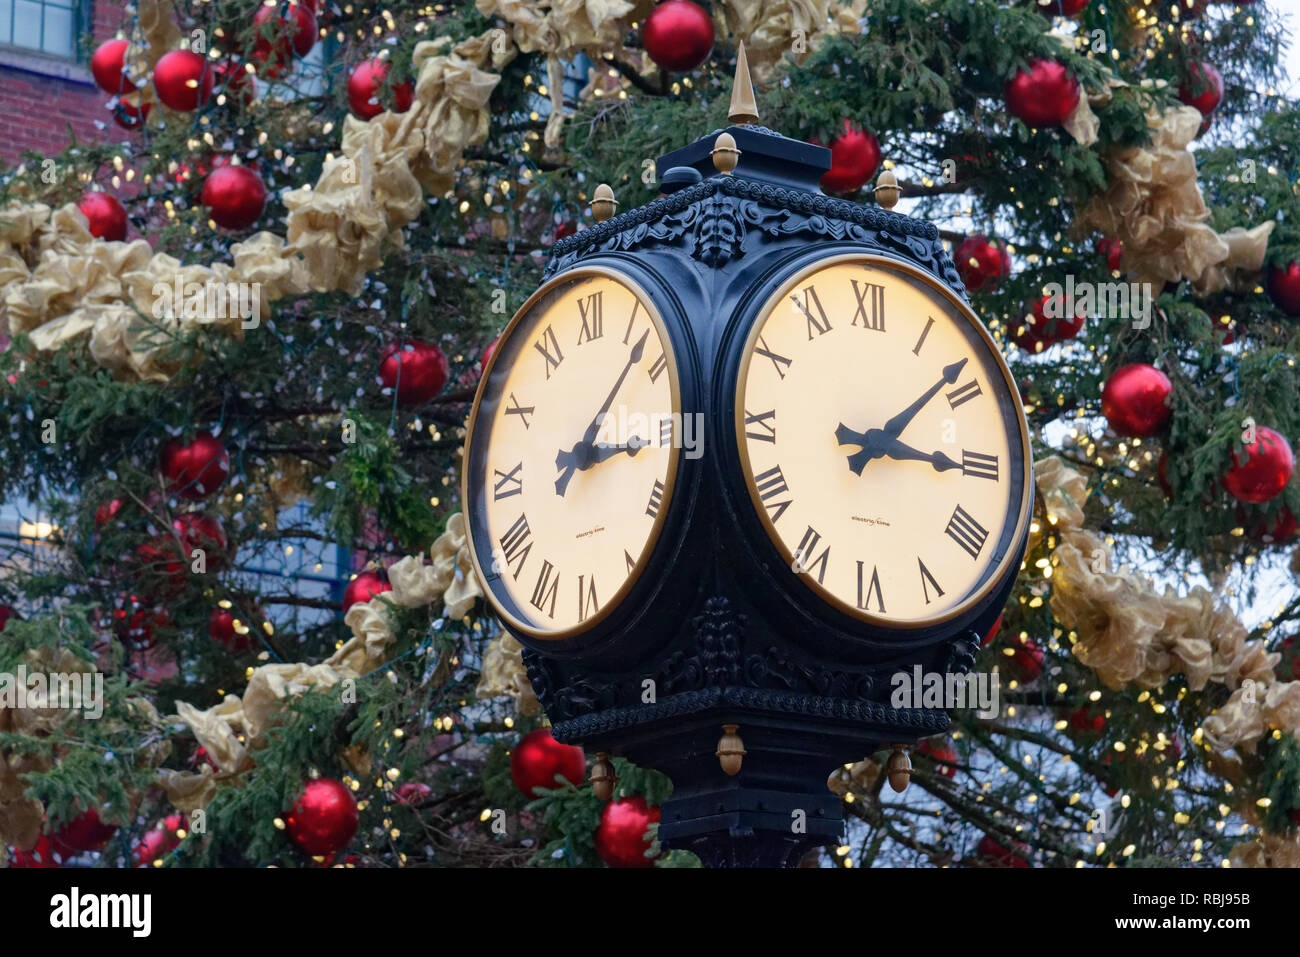 The clock and Christmas Tree in Toronto Christmas Market in the Distillery District - Stock Image